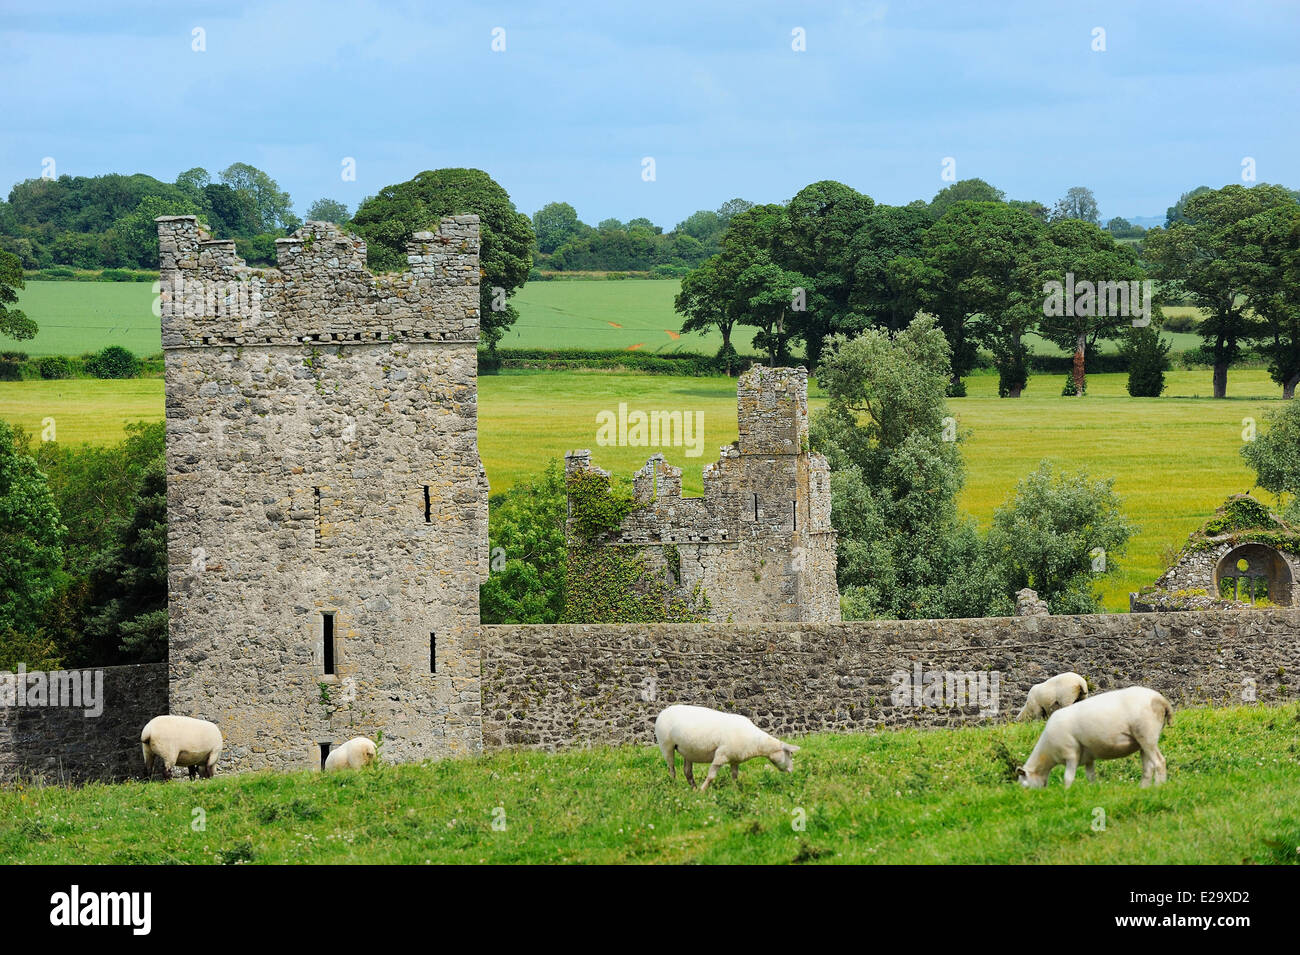 Ireland, County Kilkenny, Jerpoint Abbey, sheep in the meadow - Stock Image